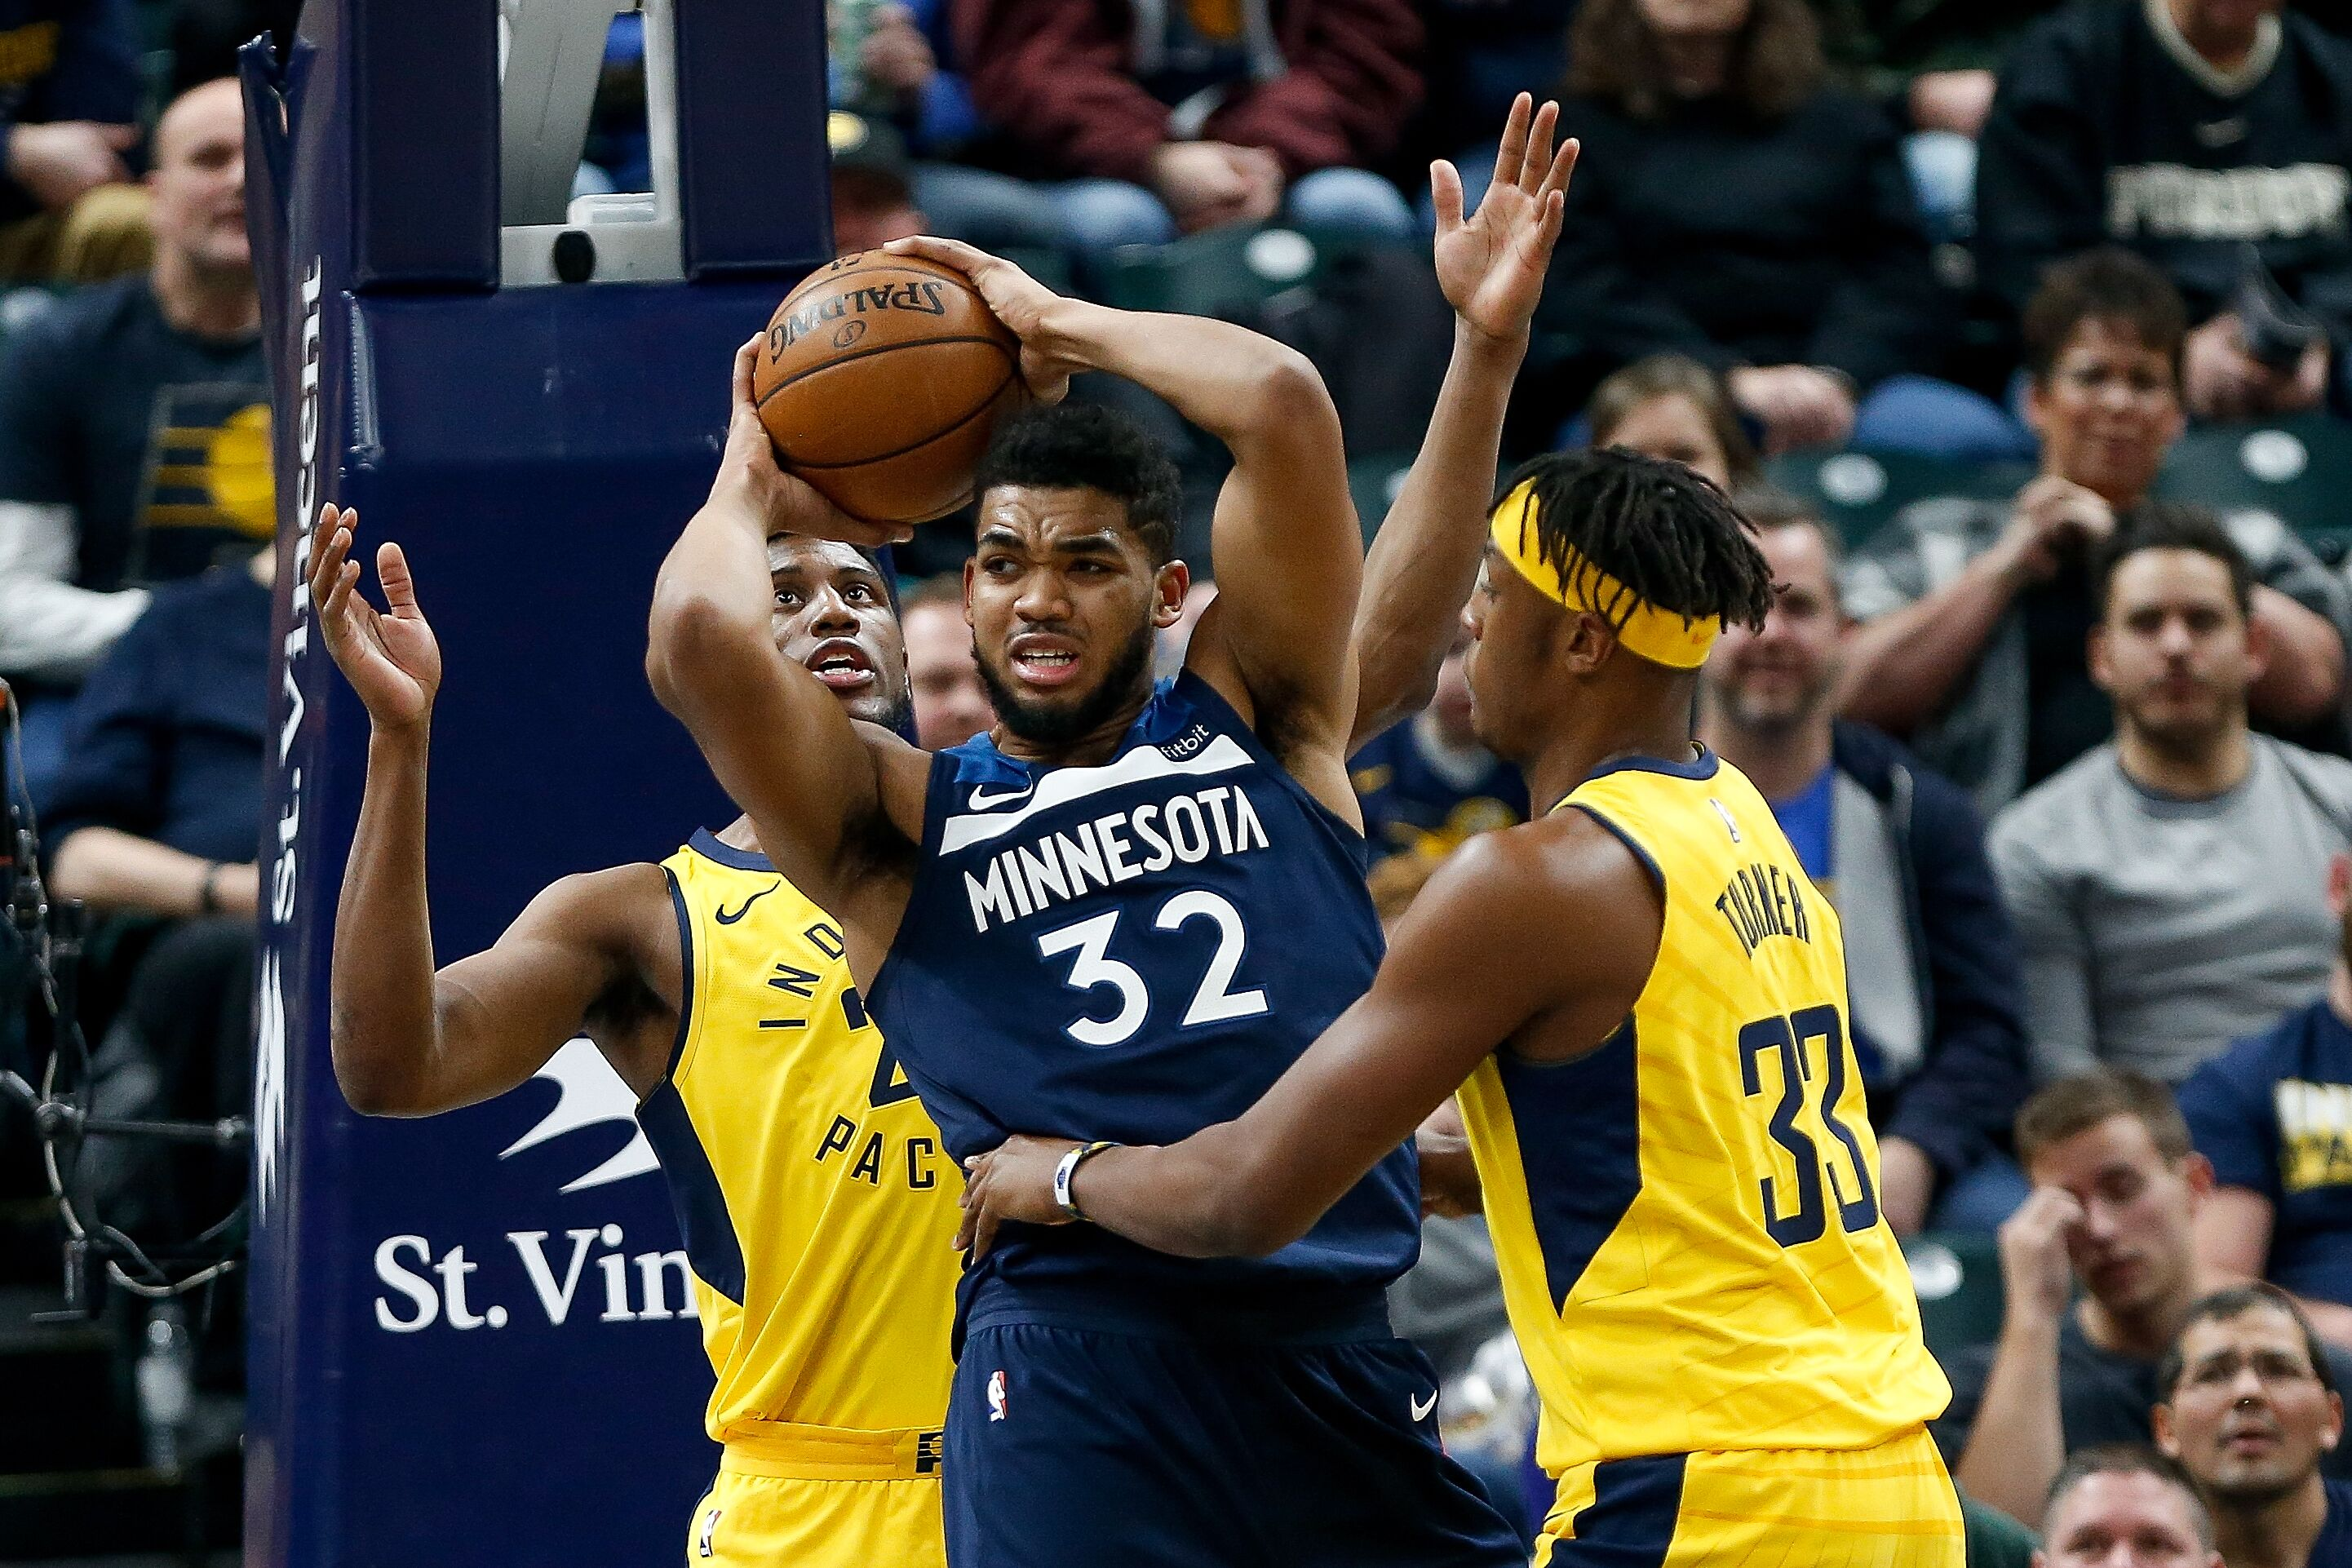 900133234-minnesota-timberwolves-v-indiana-pacers.jpg